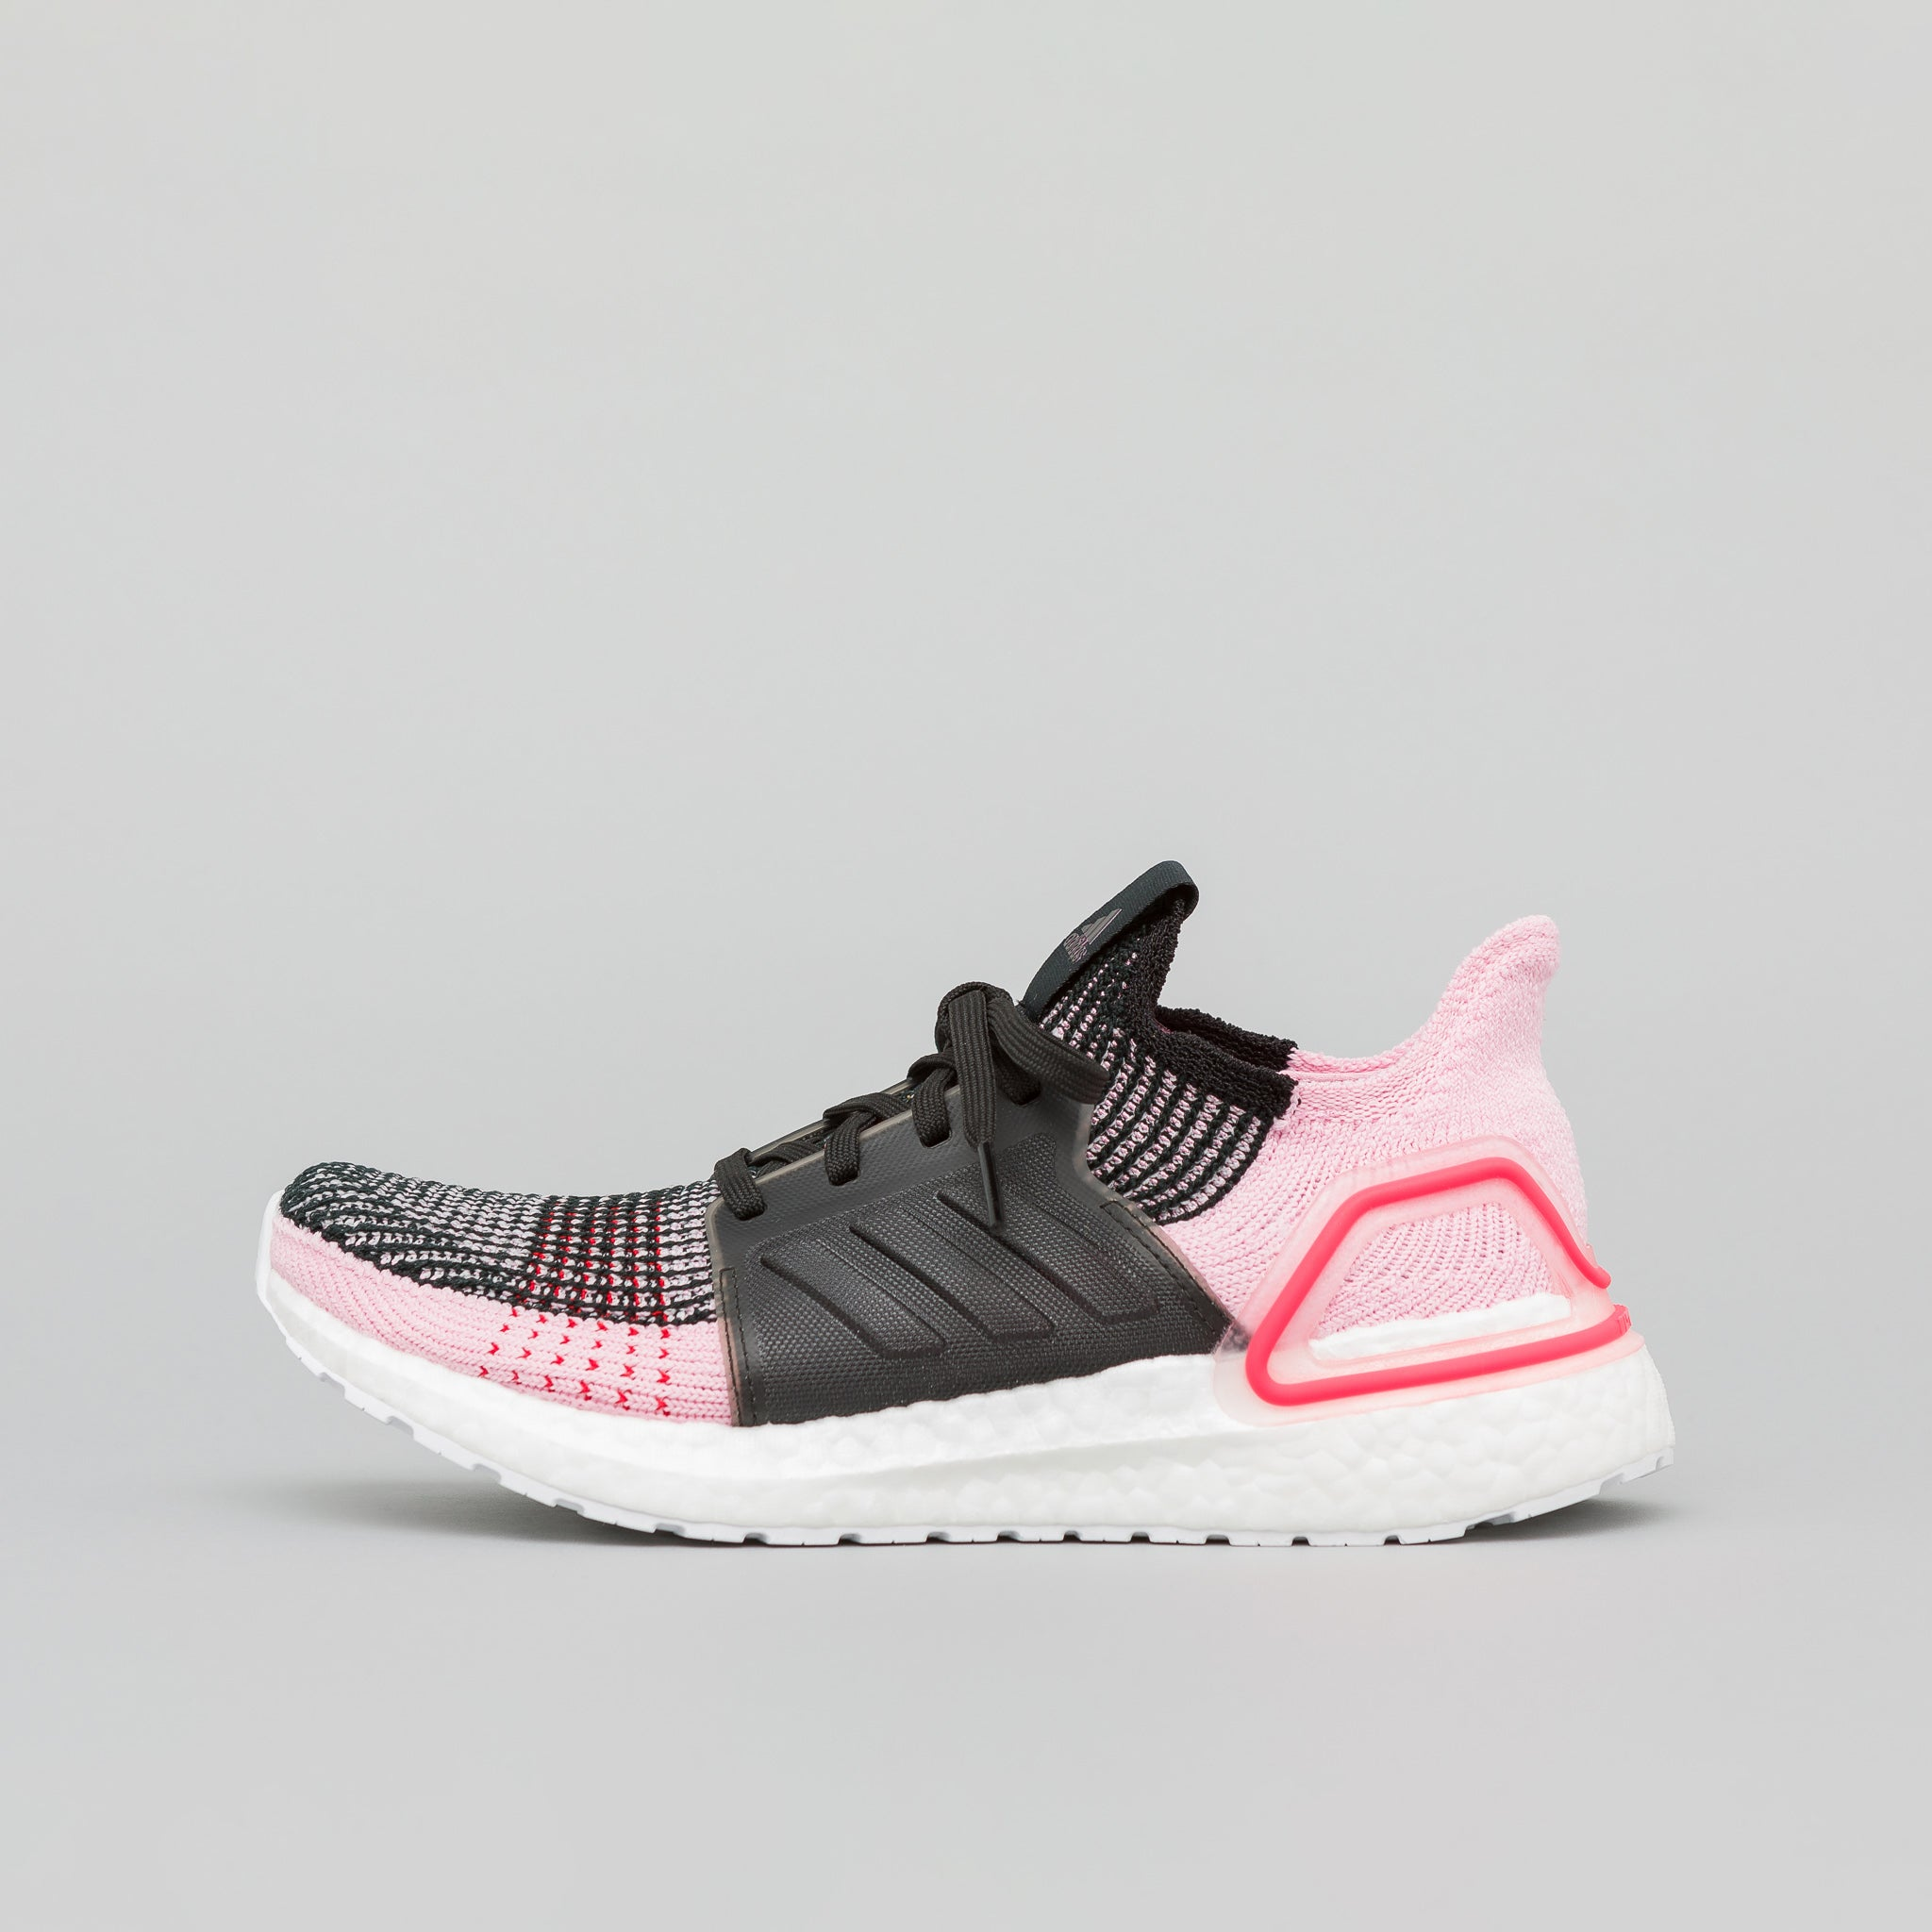 adidas Women s Ultraboost 19 in Core Black Orchid Tint Red  a9cfddd82